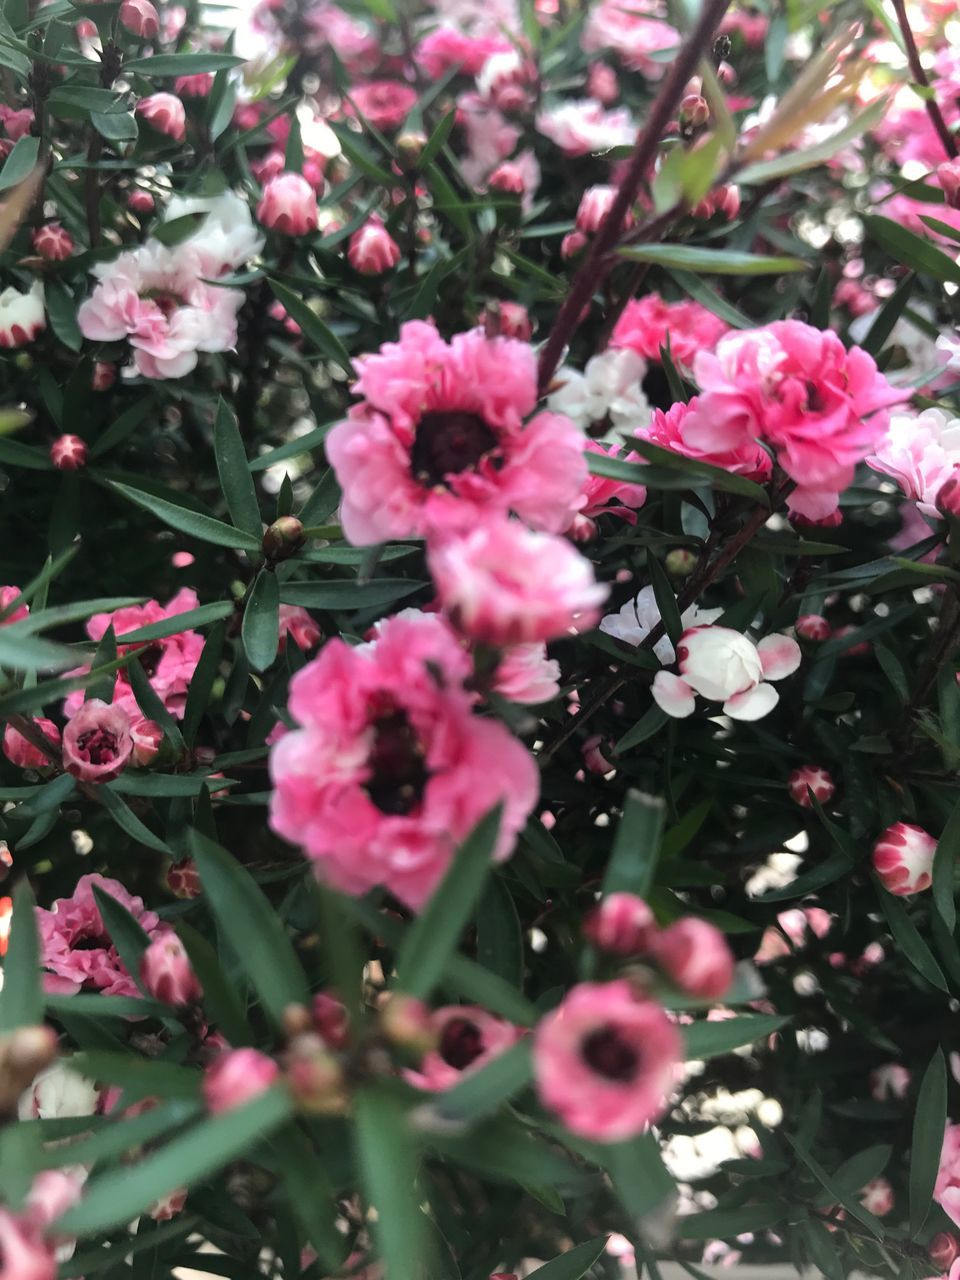 flower, flowering plant, plant, pink color, beauty in nature, fragility, vulnerability, growth, freshness, petal, nature, no people, close-up, selective focus, day, flower head, inflorescence, outdoors, garden, blossom, springtime, spring, lilac